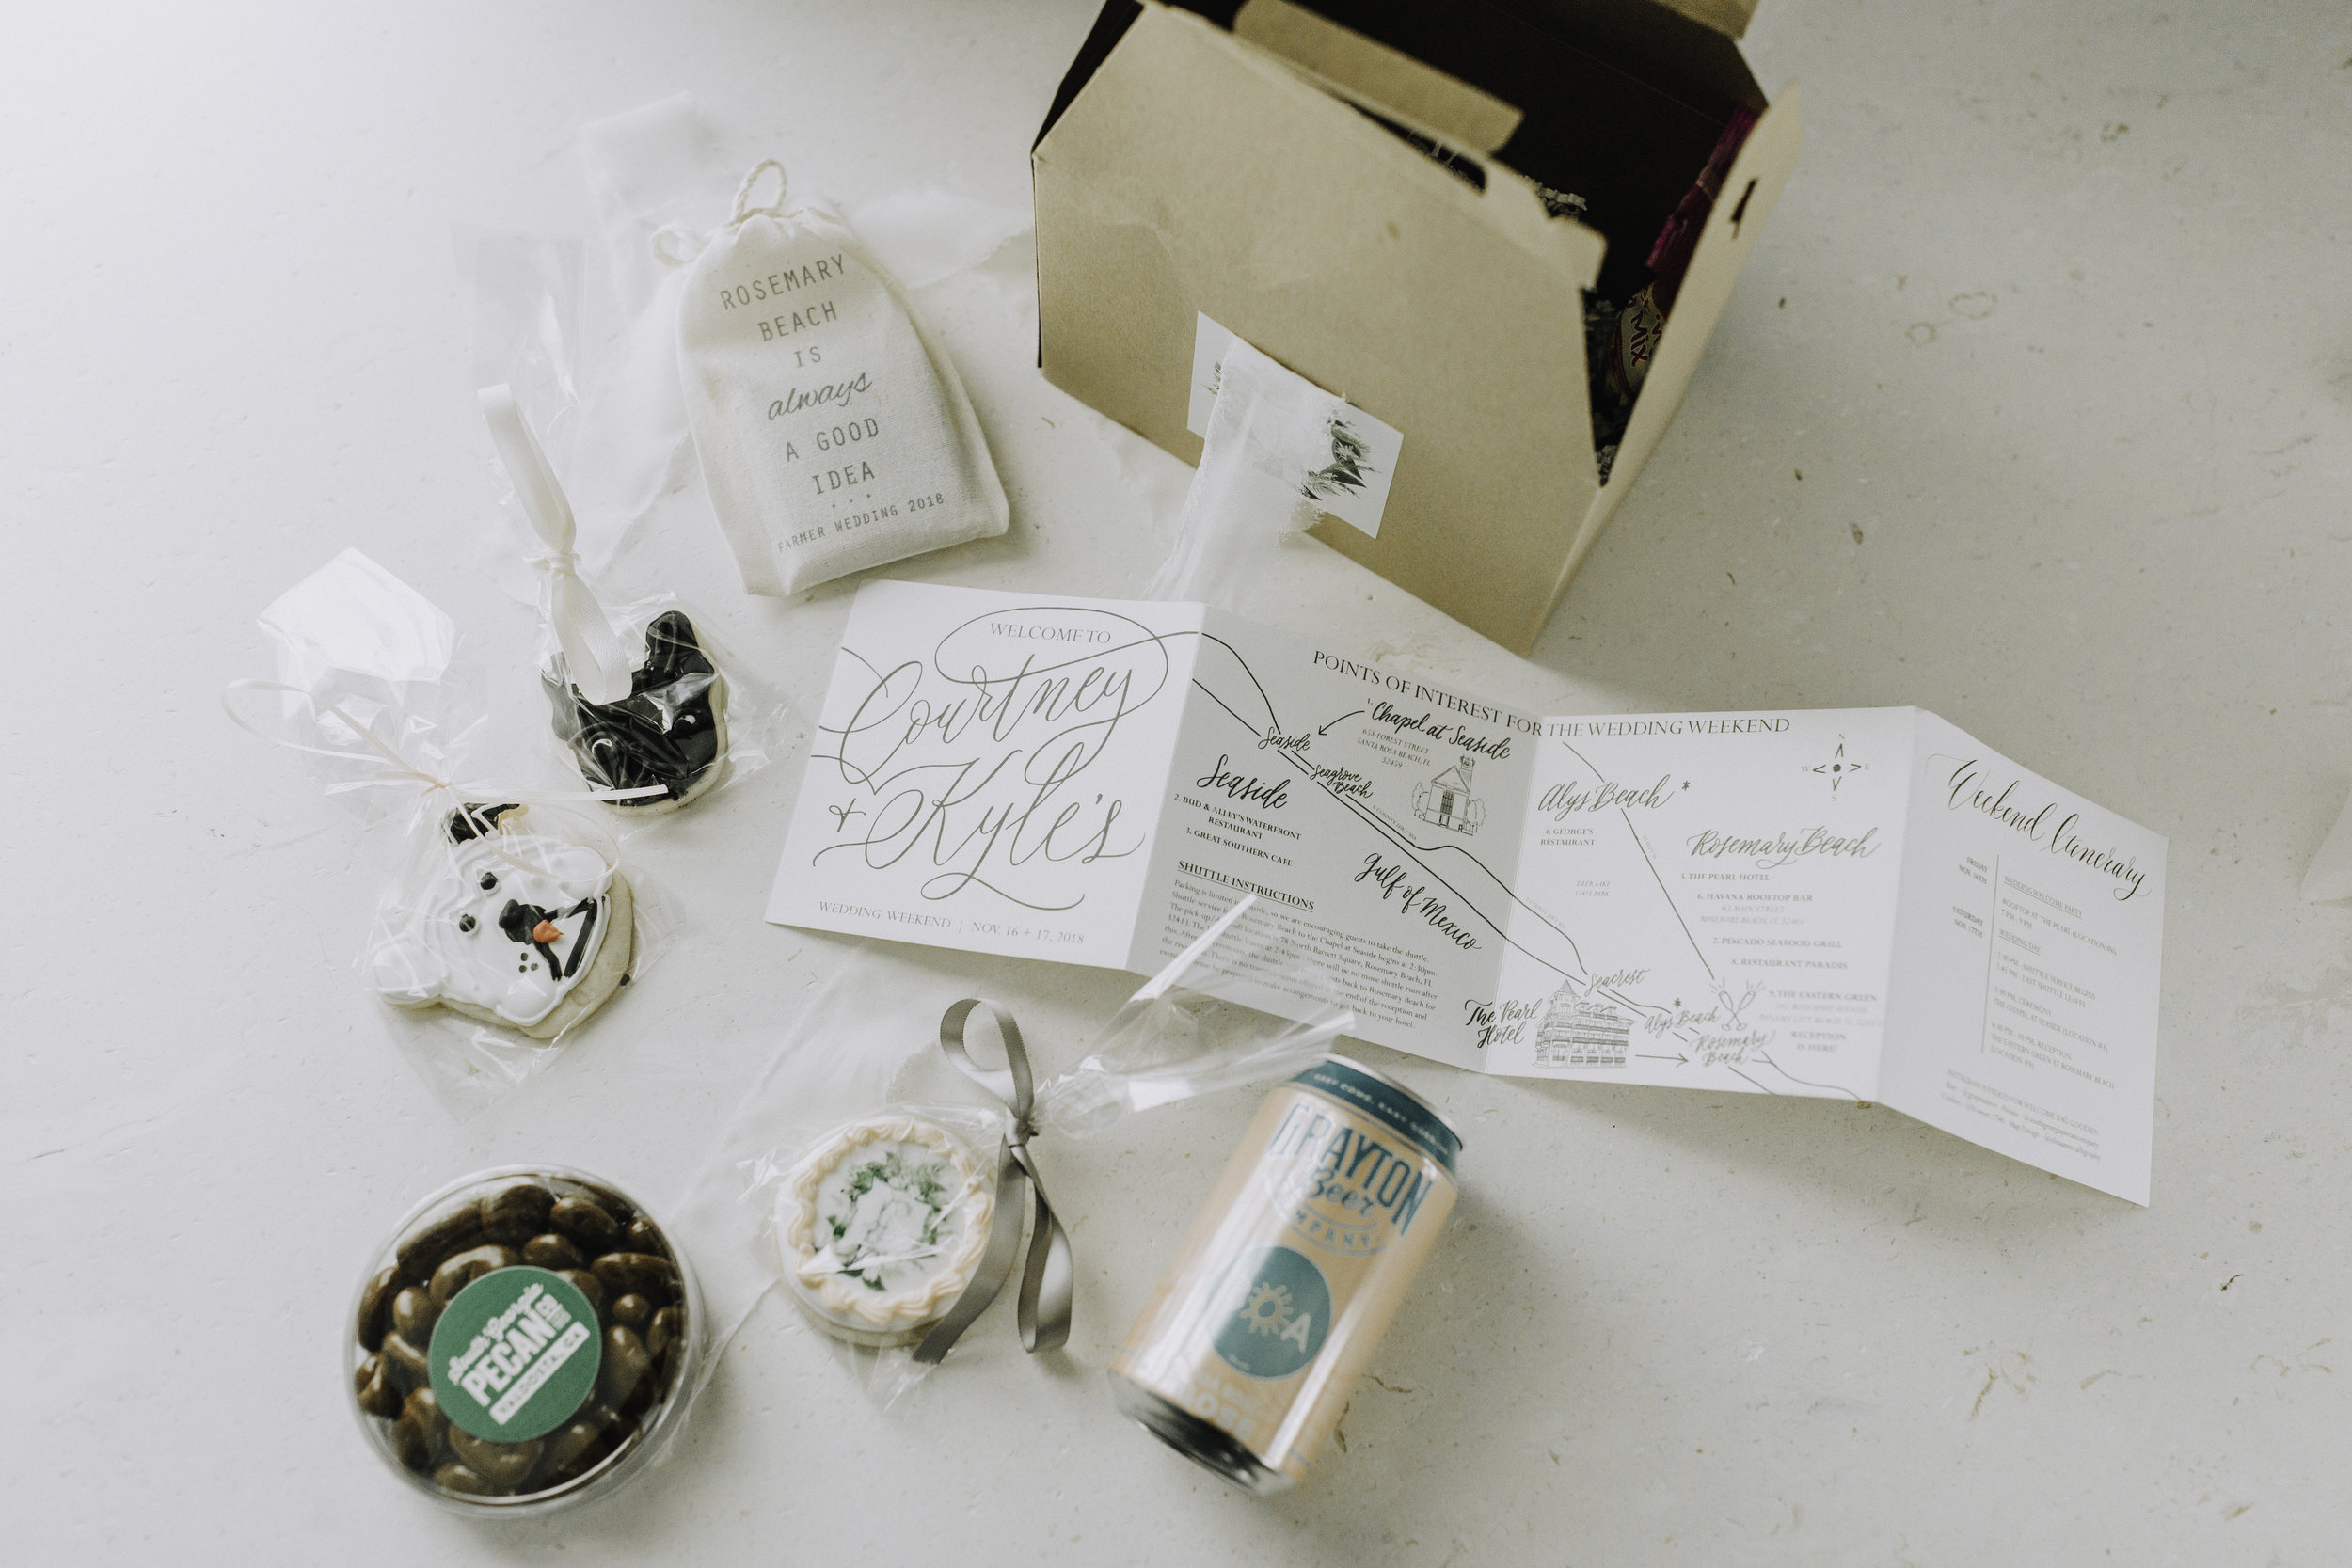 photo by lauren bailey photography. This showcases a gorgeous welcome weekend map & itinerary we made for our client's guests to enjoy in their welcome baskets. The map features 2 wedding venue illustrations - one for where the ceremony was held, and the other for where the reception was held!